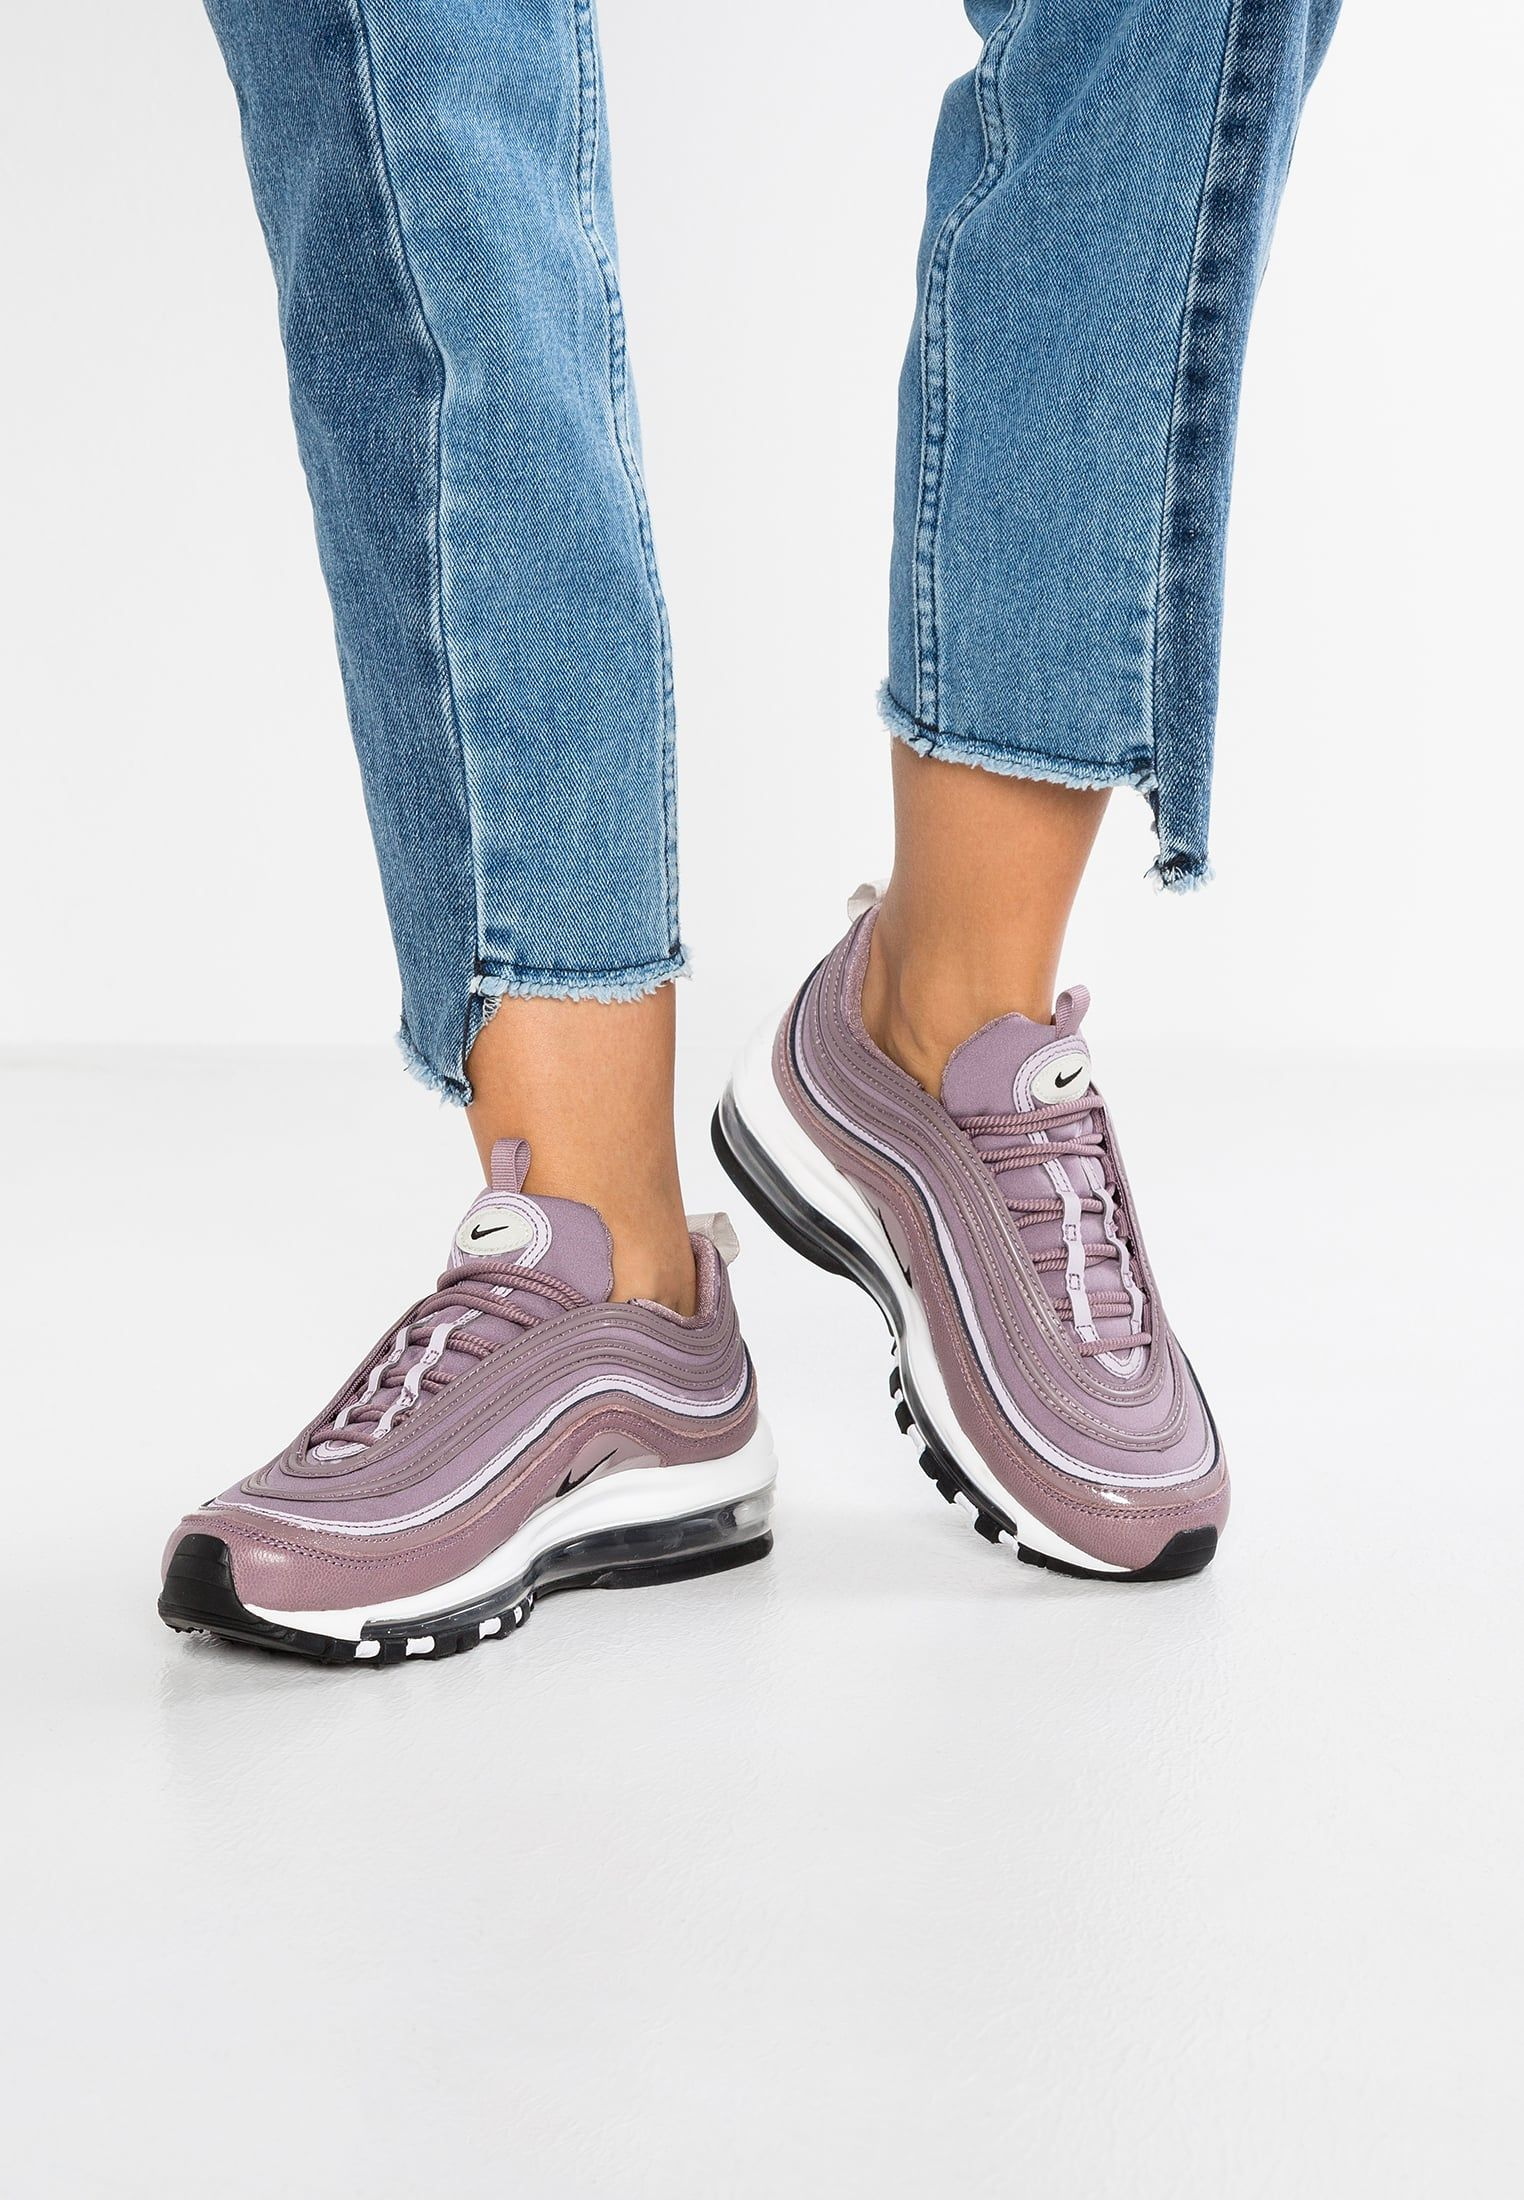 dd04121686 ... wholesale chaussures nike sportswear air max 97 prm baskets basses  taupe grey black 81251 46c99